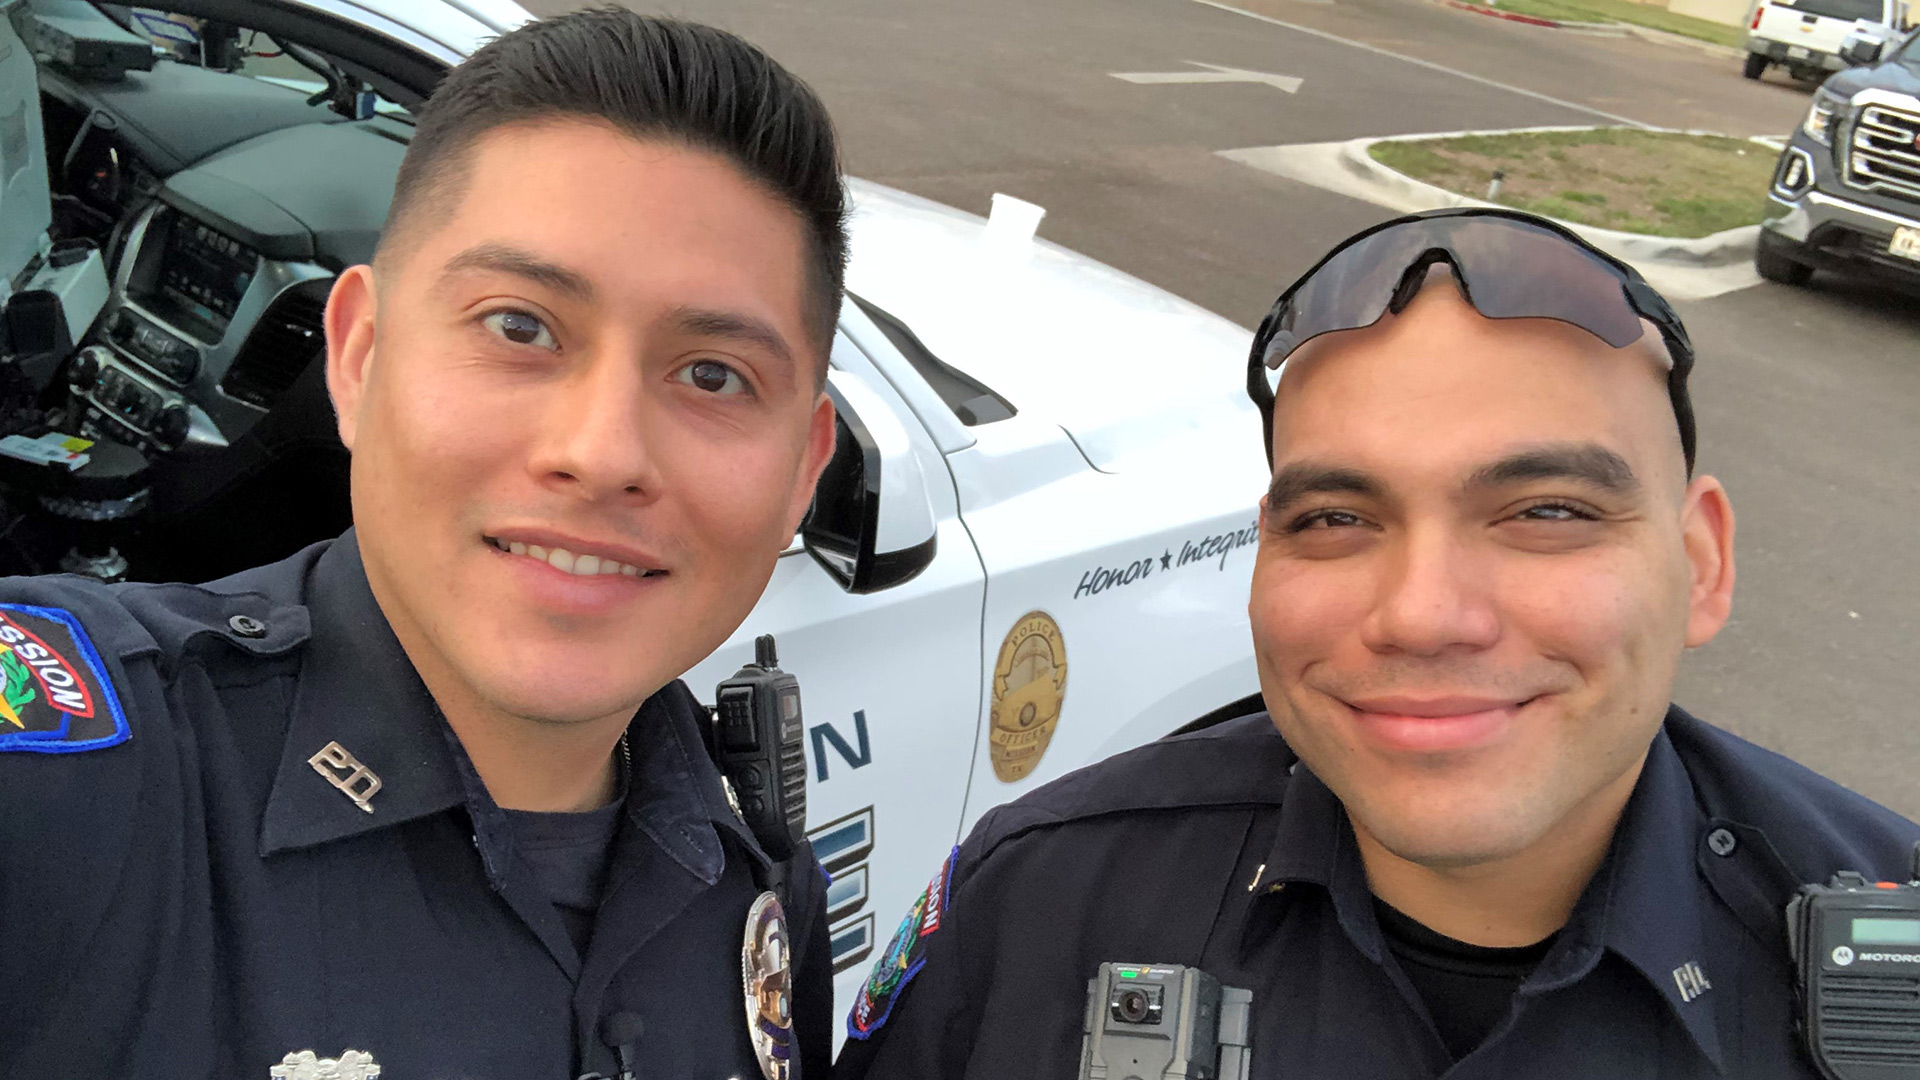 Live PD Officers Juan Mercado and John Oliva on Their Proudest Moments on the Job